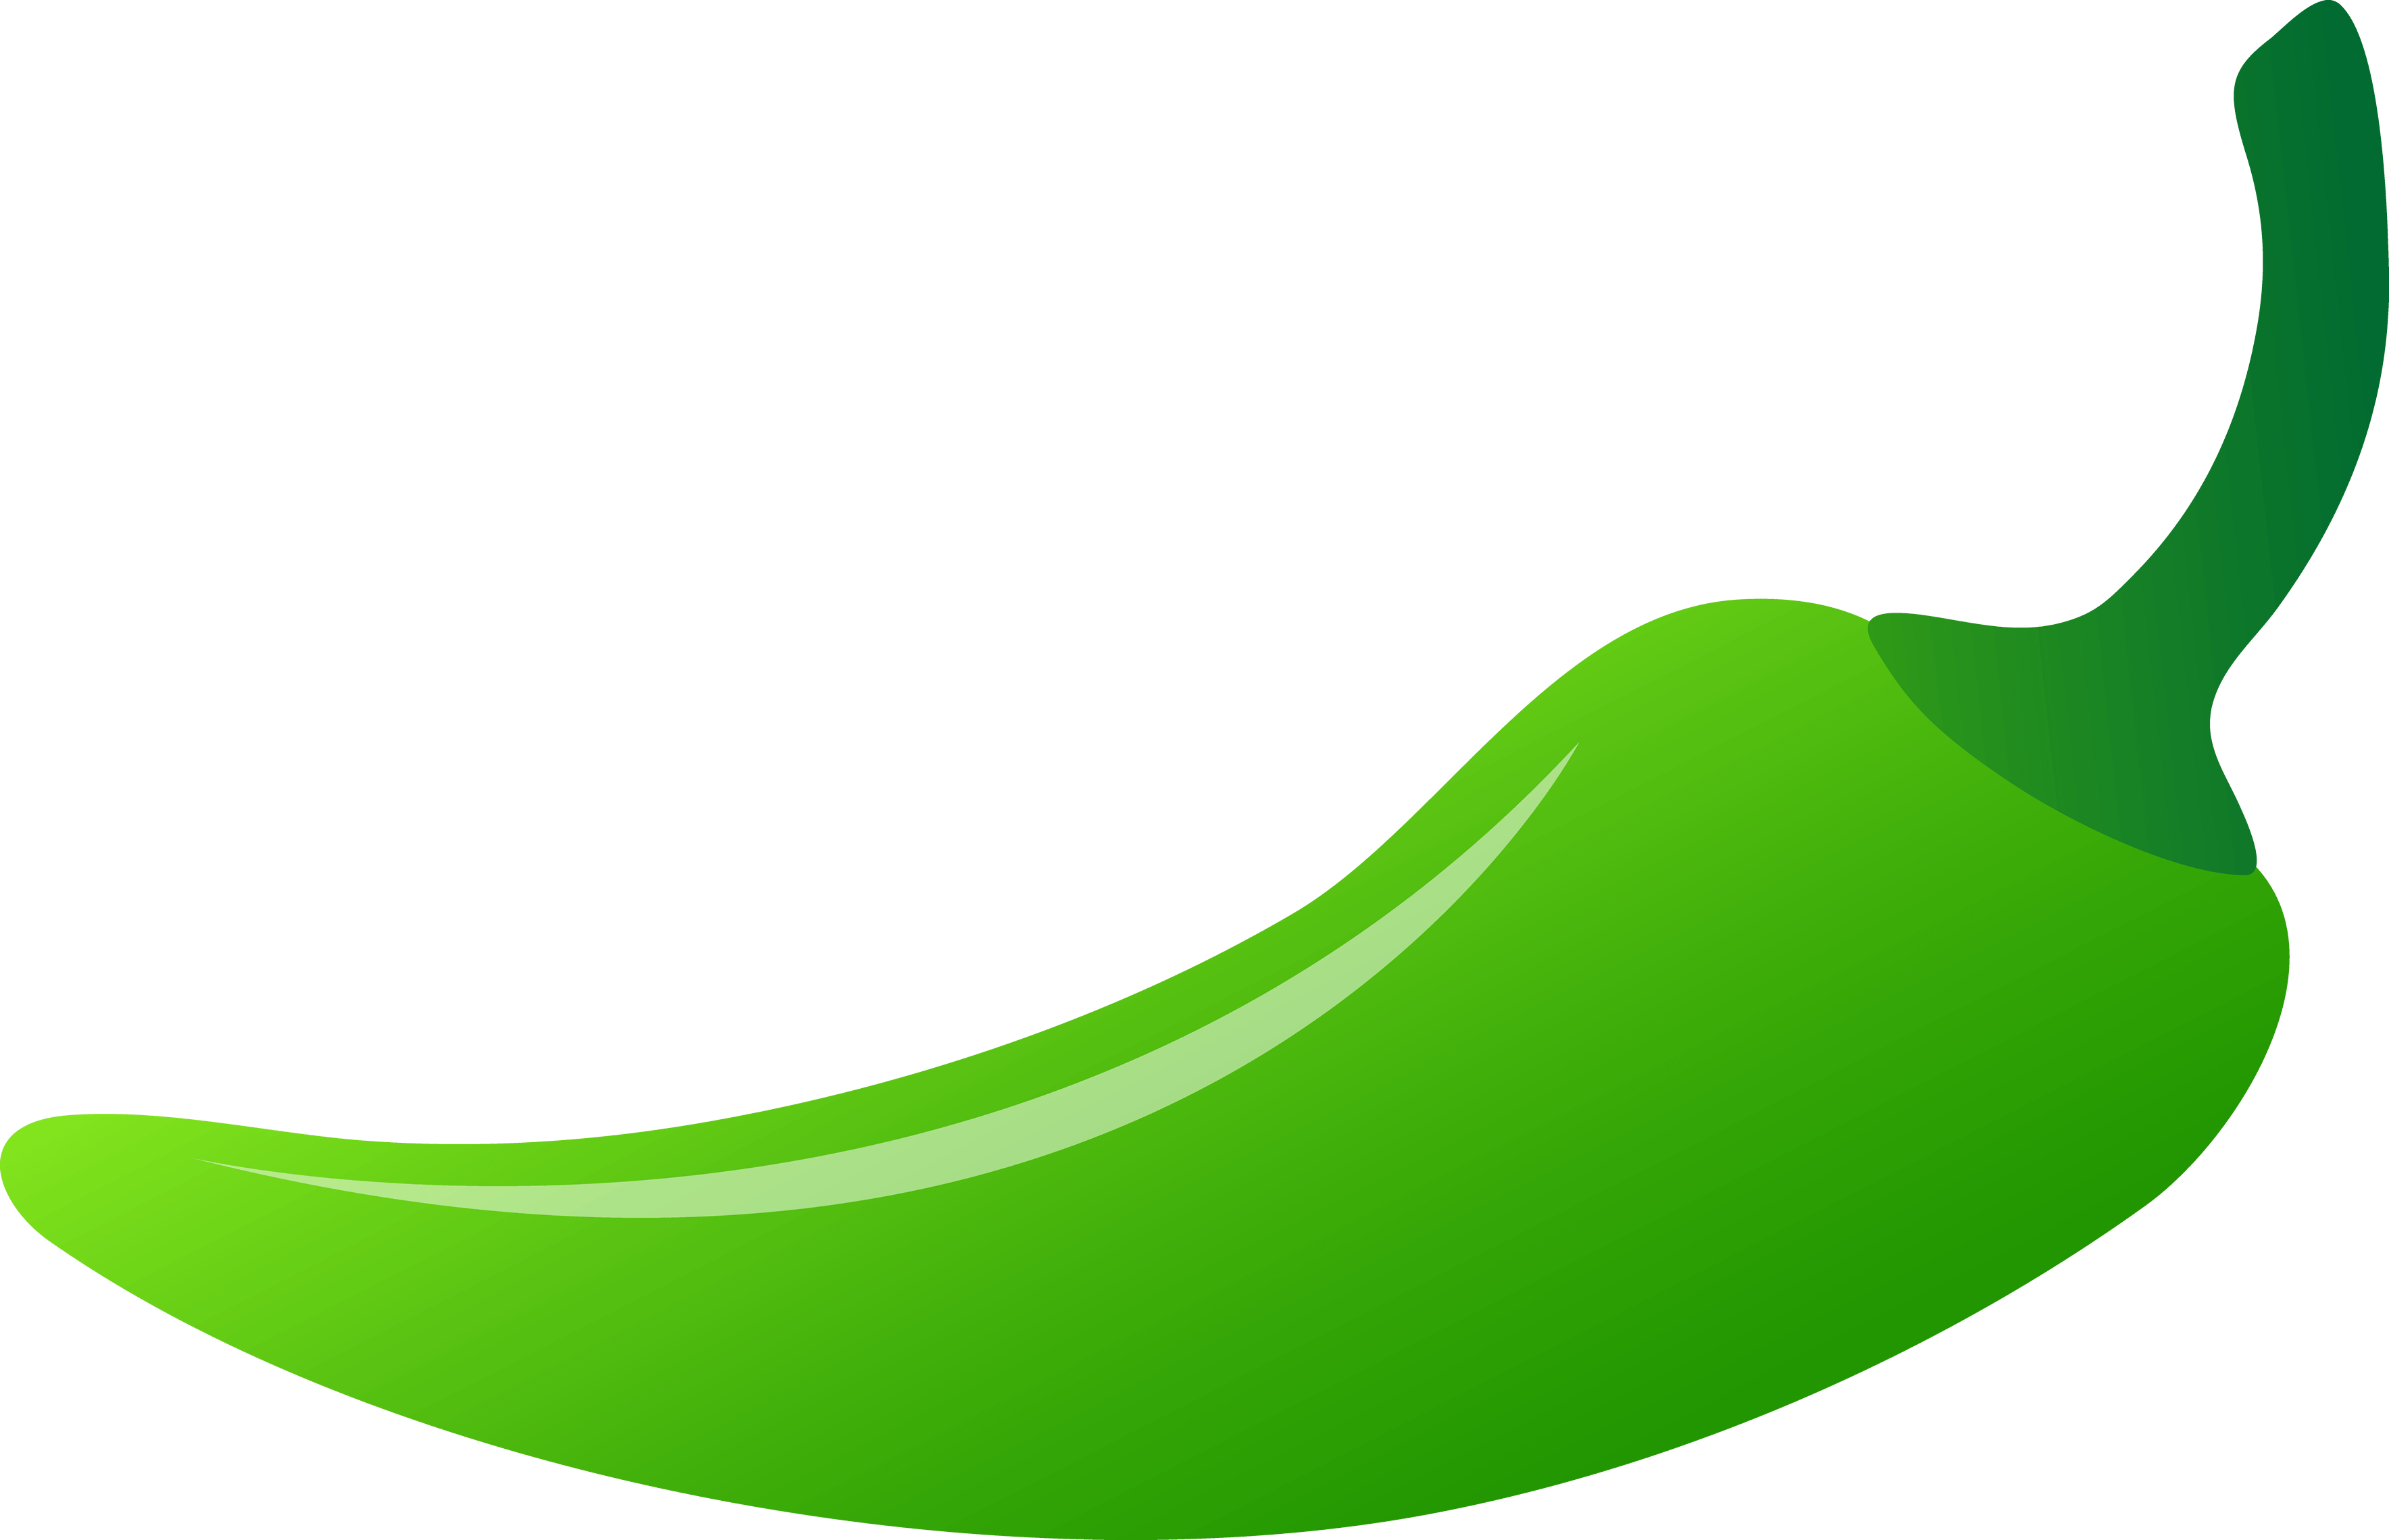 Green Pepper Png Image PNG Image